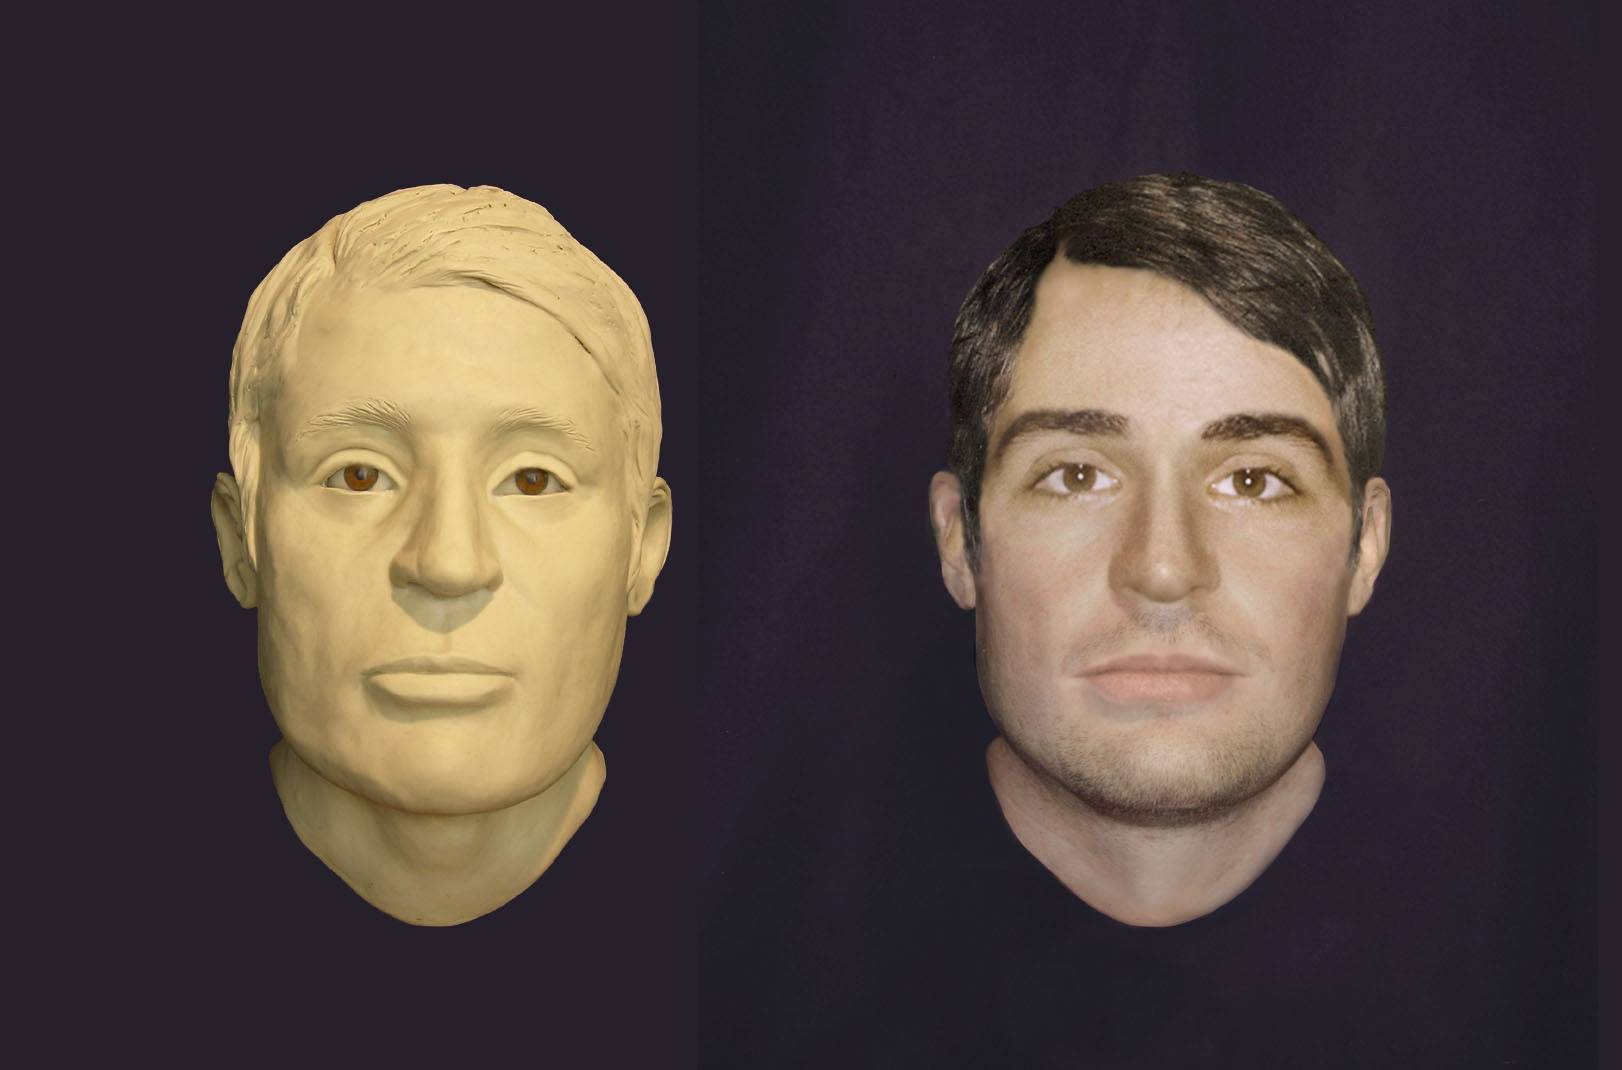 LEFT: Clay model of the face of a USS Monitor sailor whose remains were found in the gun turret in 2002. RIGHT: Computer enhanced image showing what the unknown sailor may have looked like while aboard the USS Monitor in 1862.